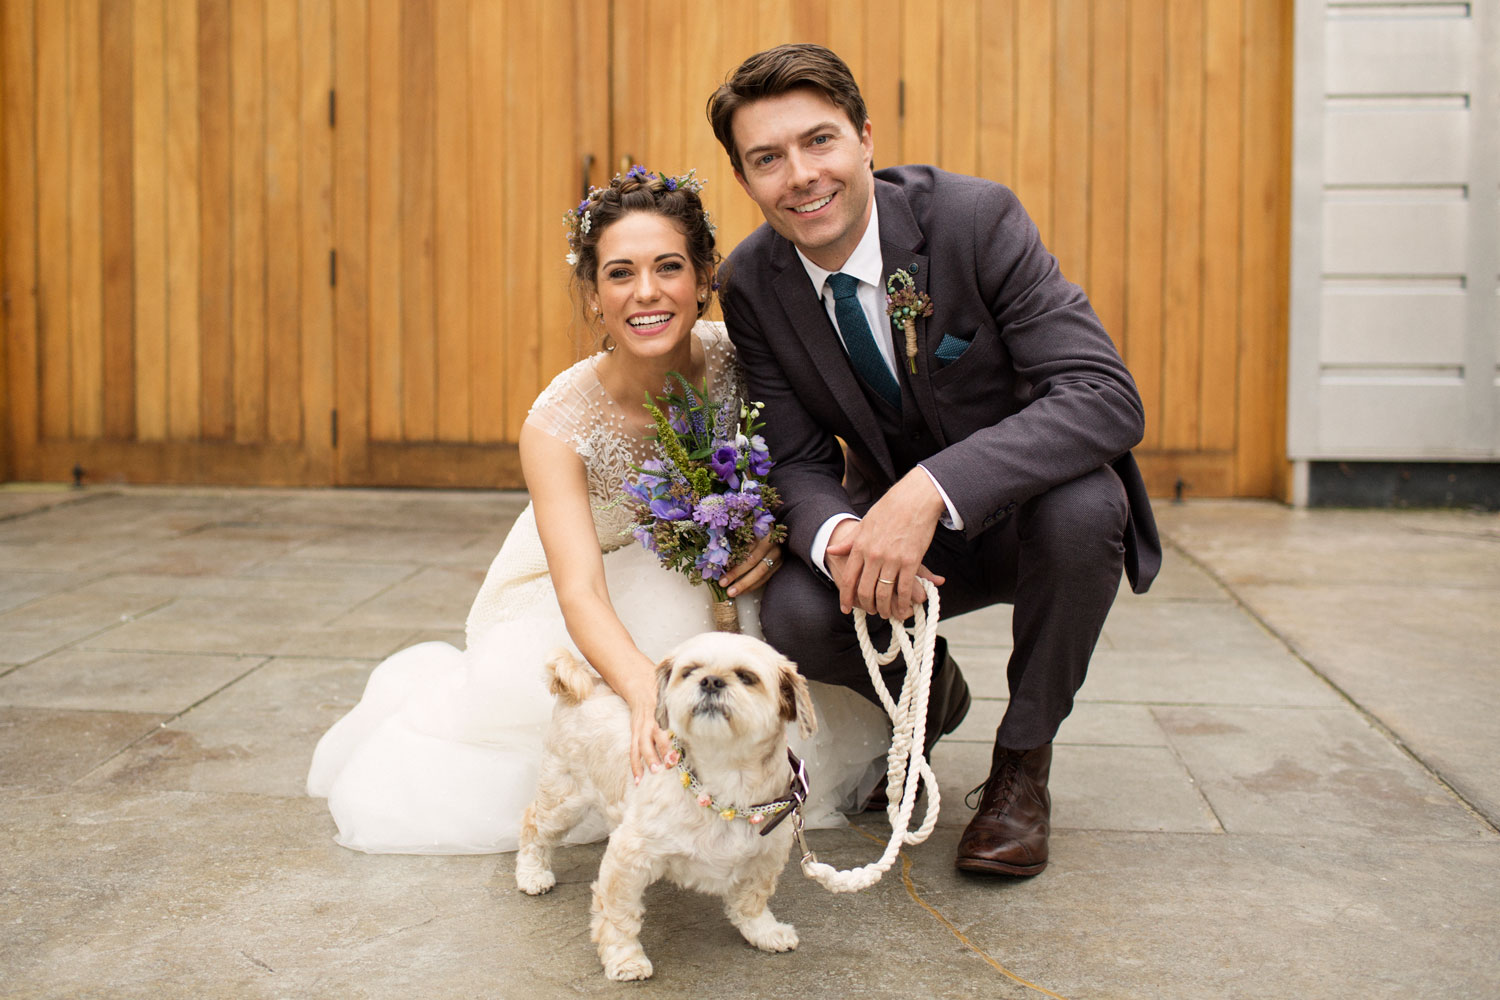 Lyndsy Fonseca and Noah Bean wedding with little dog in attendance